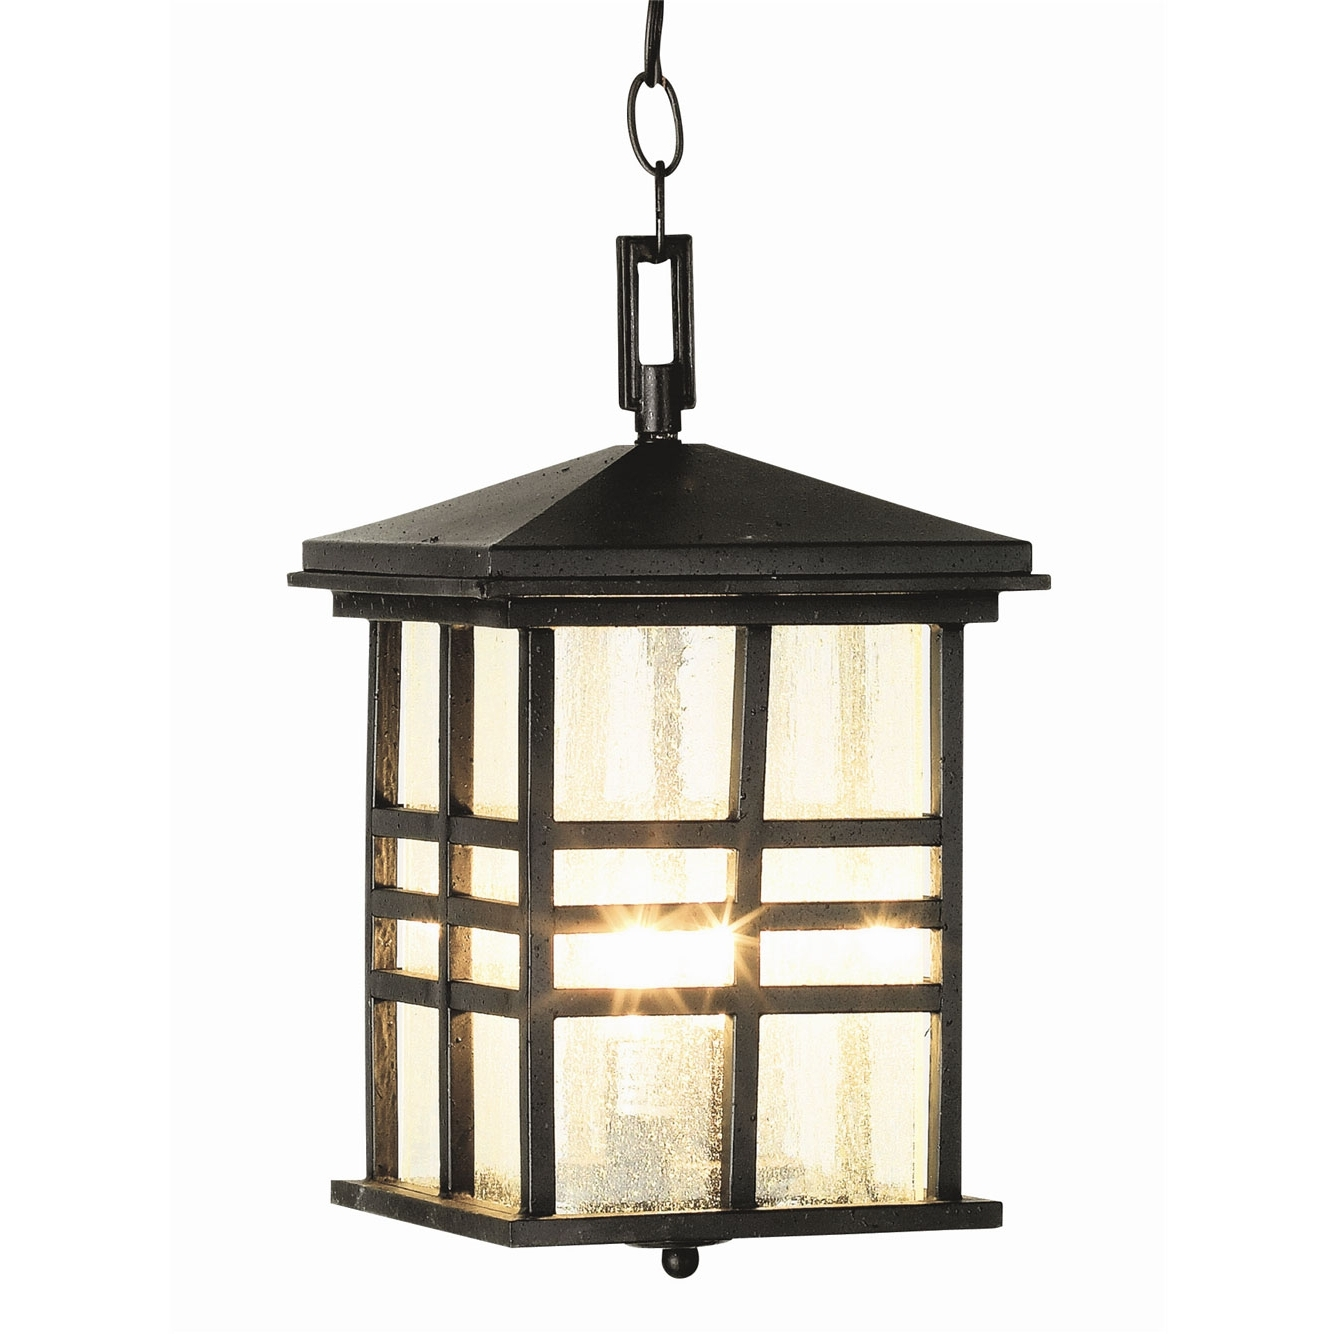 Outdoor Hanging Lanterns From Canada Pertaining To Most Up To Date Furniture : Design Your Rustic Outdoor Lighting Inside Cheap Hanging (View 8 of 20)